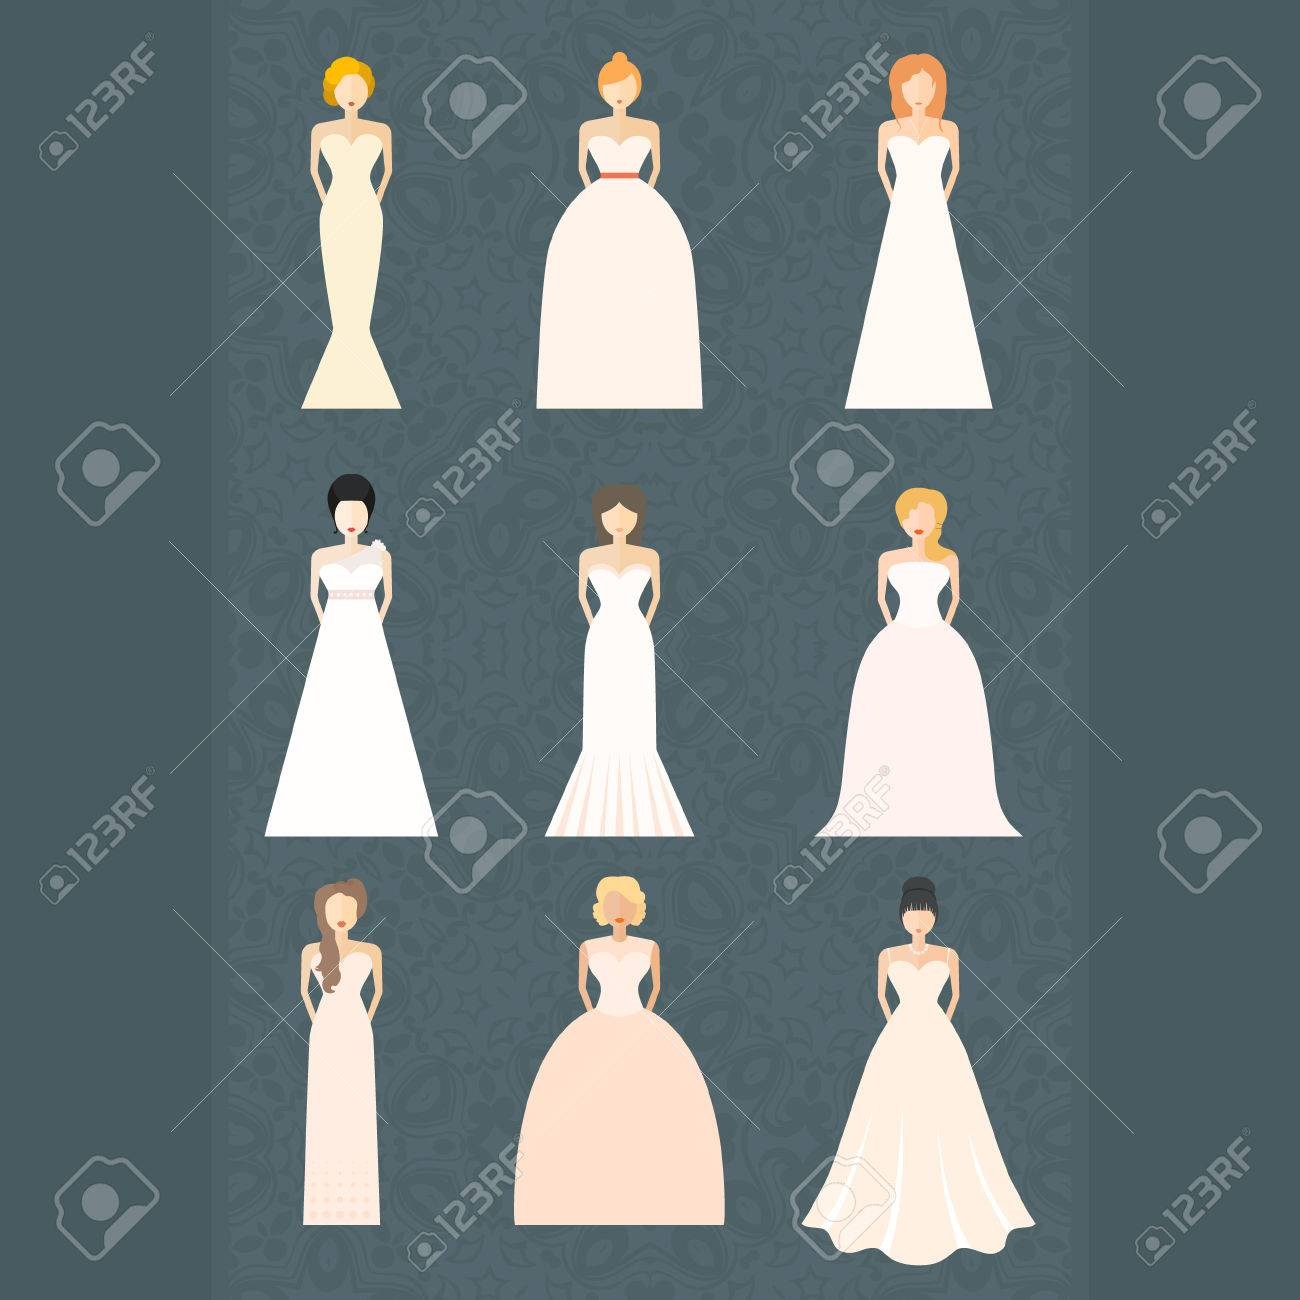 Brides in different styles of wedding dresses made in modern brides in different styles of wedding dresses made in modern flat vector style choose your junglespirit Image collections